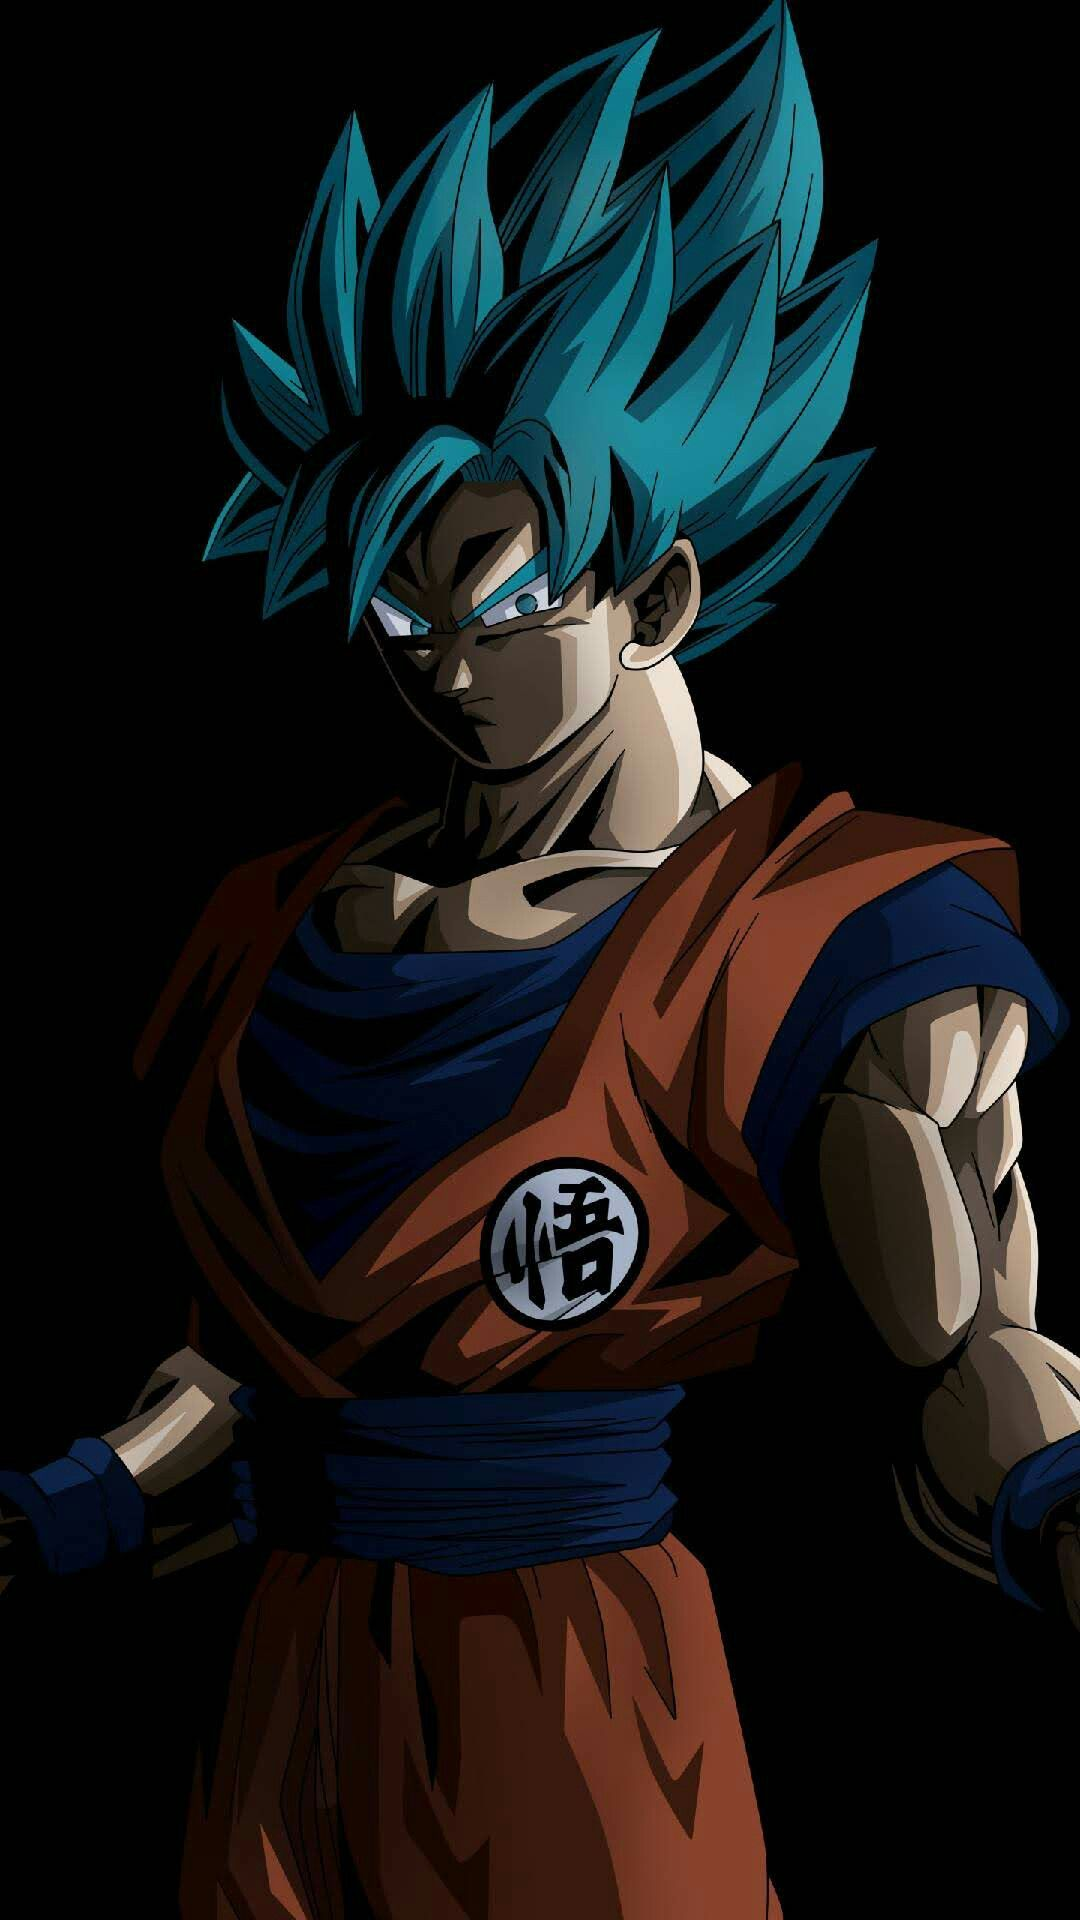 Pin de Gabrielquiles en Anime Personajes de dragon ball